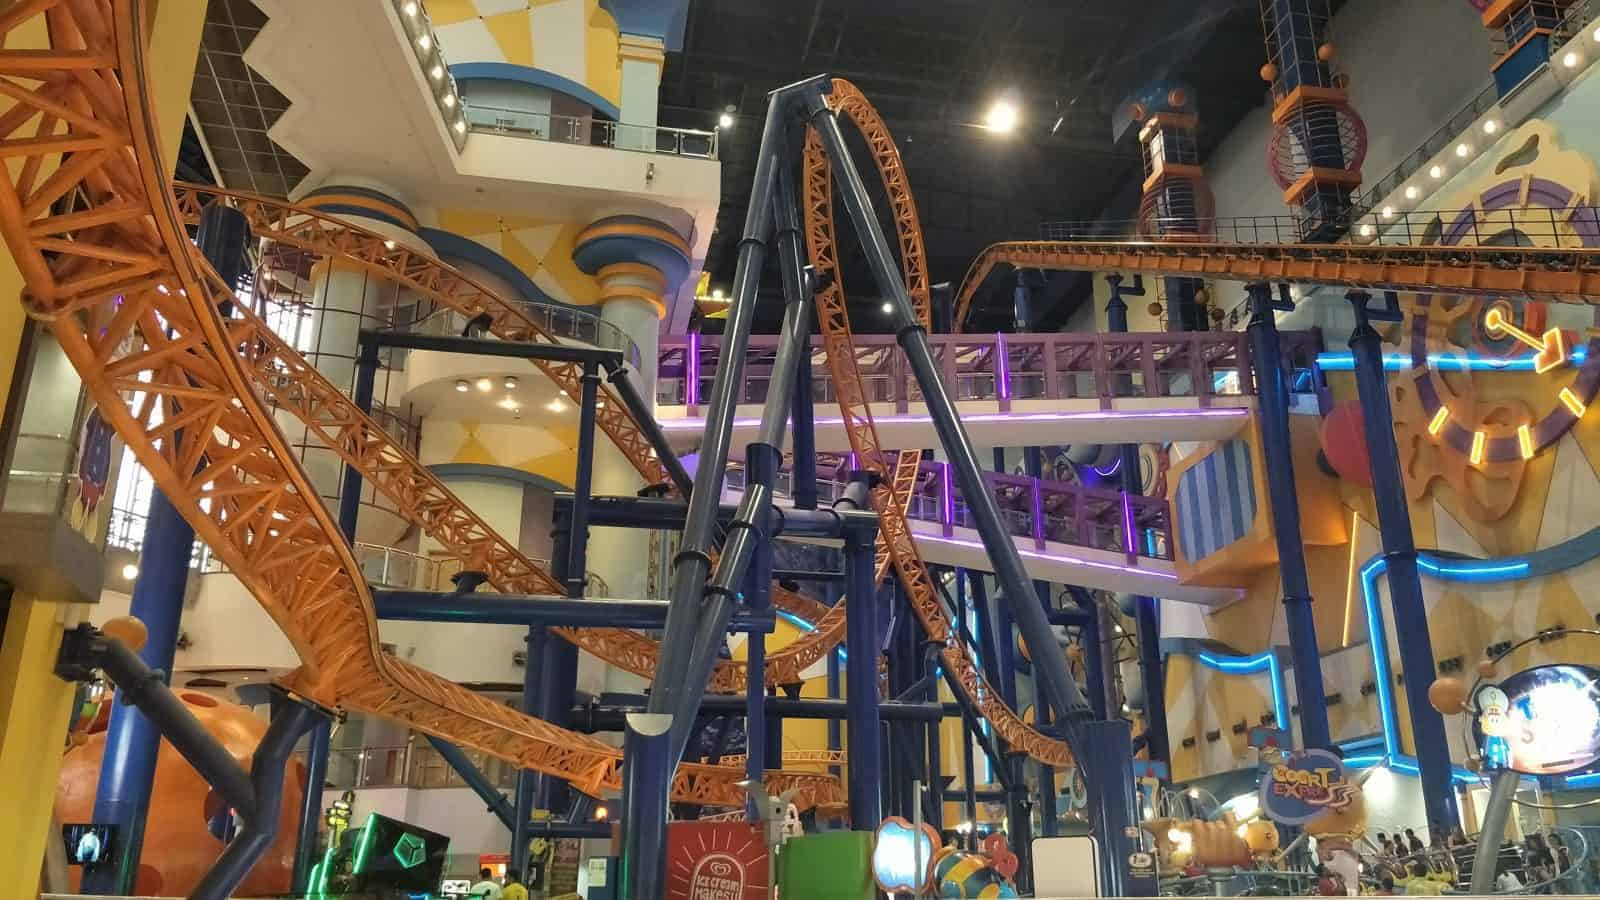 Roller Coaster inside a shopping mall KL